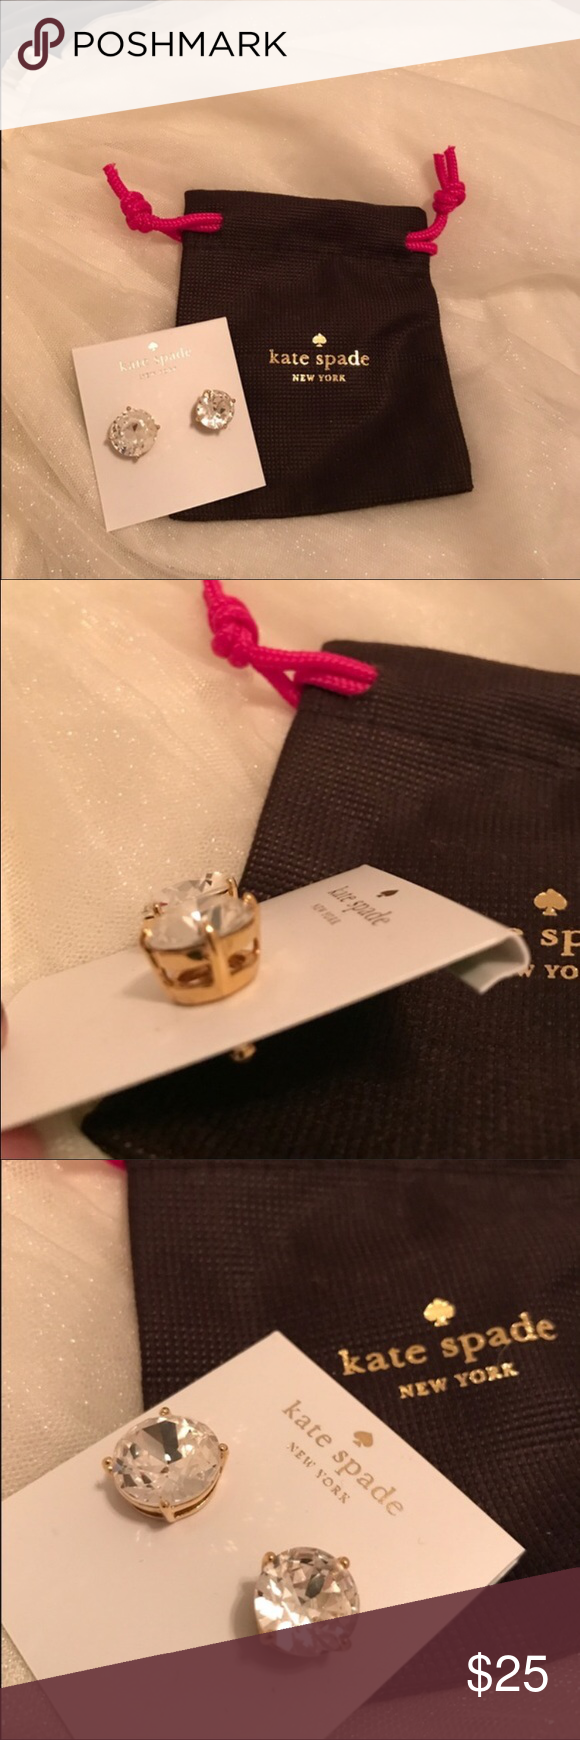 NWT 🎀 Kate Spade Gumdrop Earrings 🌺 NWT Kate Spade Gum Drop Stud Earrings in Clear. Beautiful statement piece! 🎀👛🌺Gold mounting & clear stones go with any outfit! kate spade Jewelry Earrings